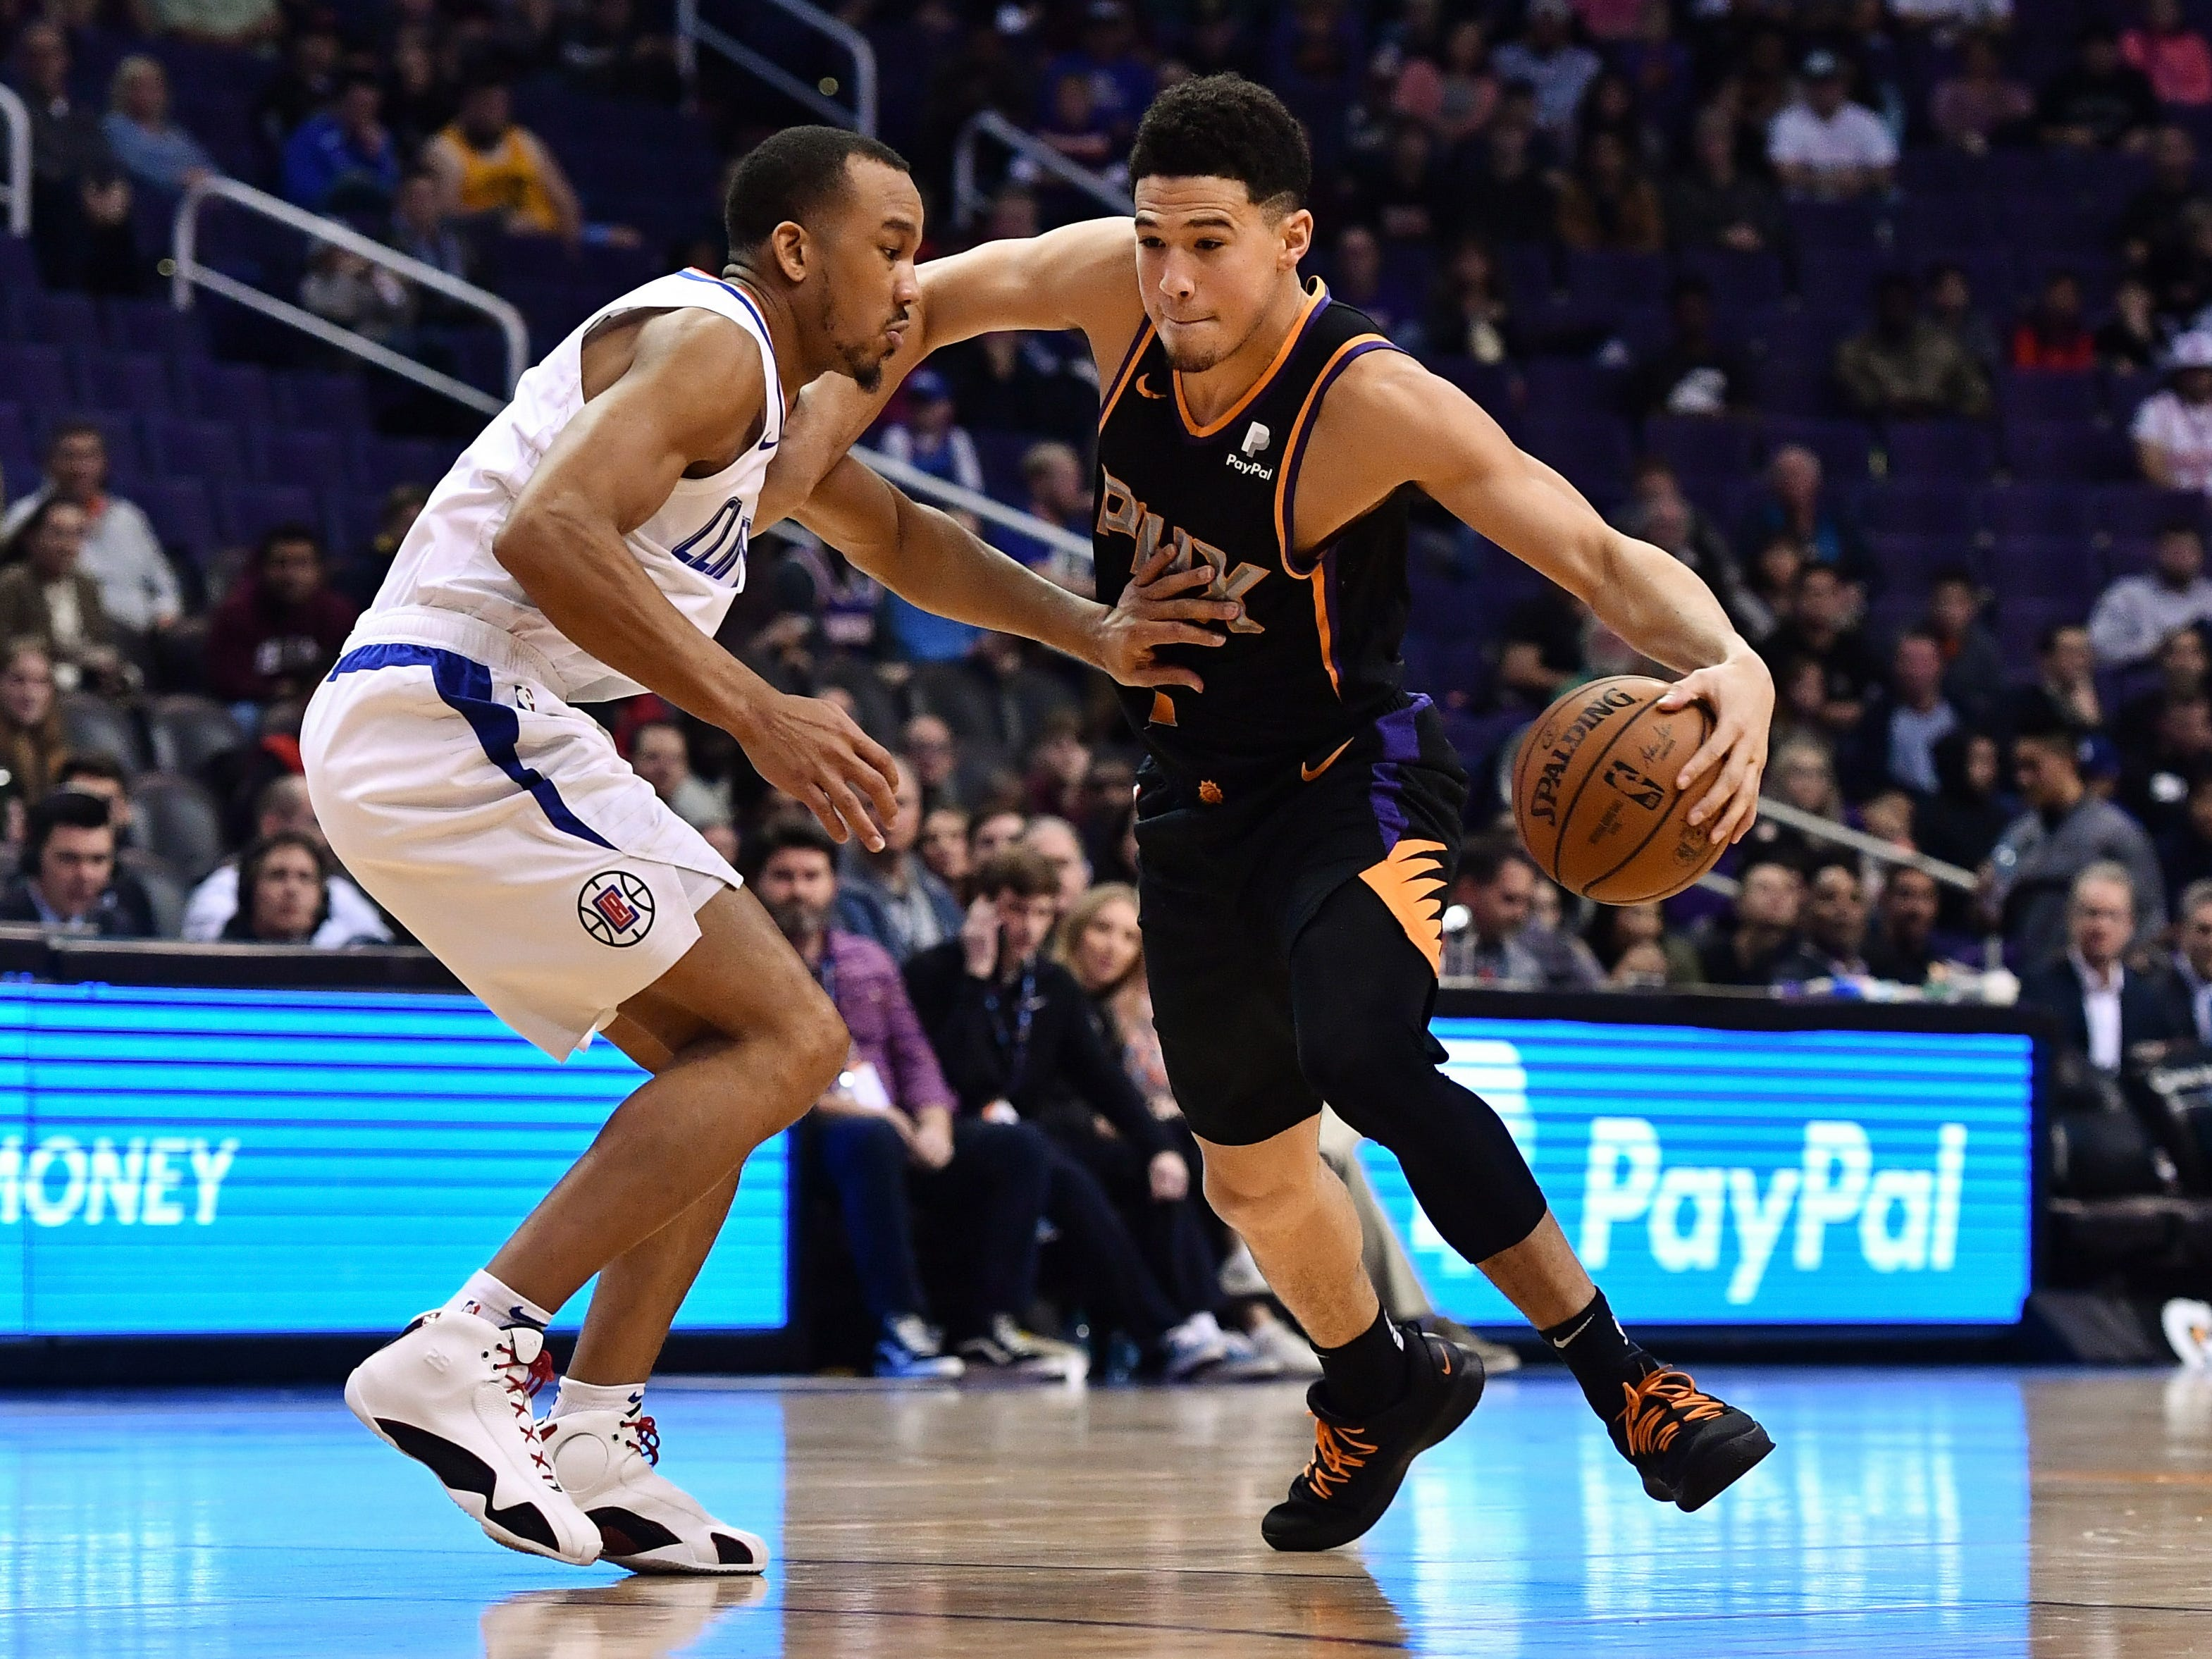 Jan 4, 2019; Phoenix, AZ, USA; Phoenix Suns guard Devin Booker (1) handles the ball against LA Clippers guard Avery Bradley (11) in the first half at Talking Stick Resort Arena. Mandatory Credit: Jennifer Stewart-USA TODAY Sports